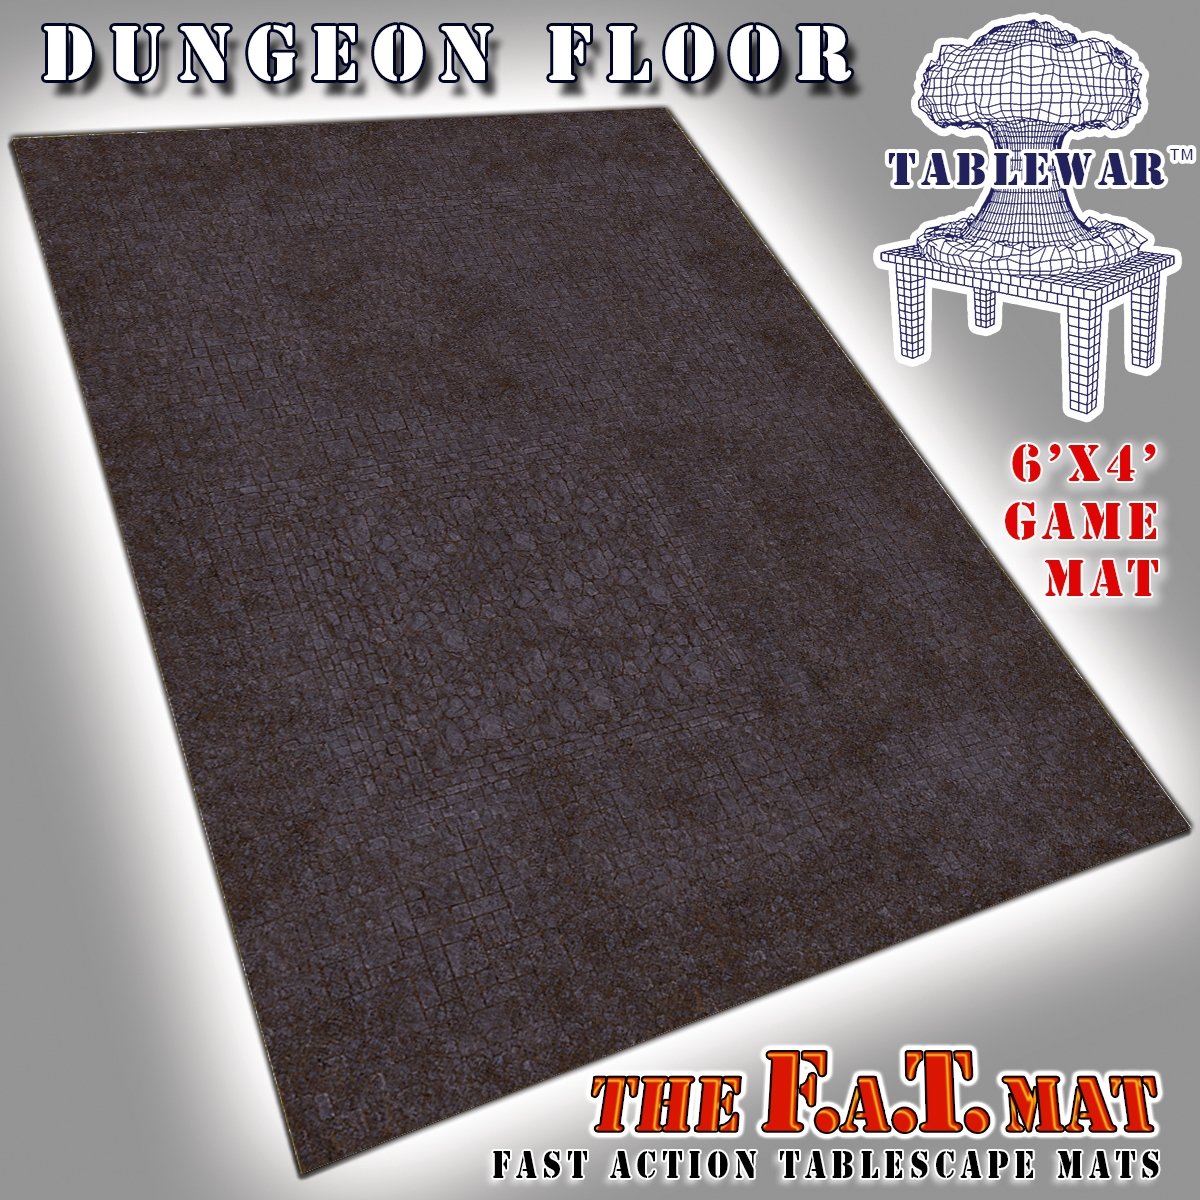 F.A.T. Mats: Dungeon Floor 6×4